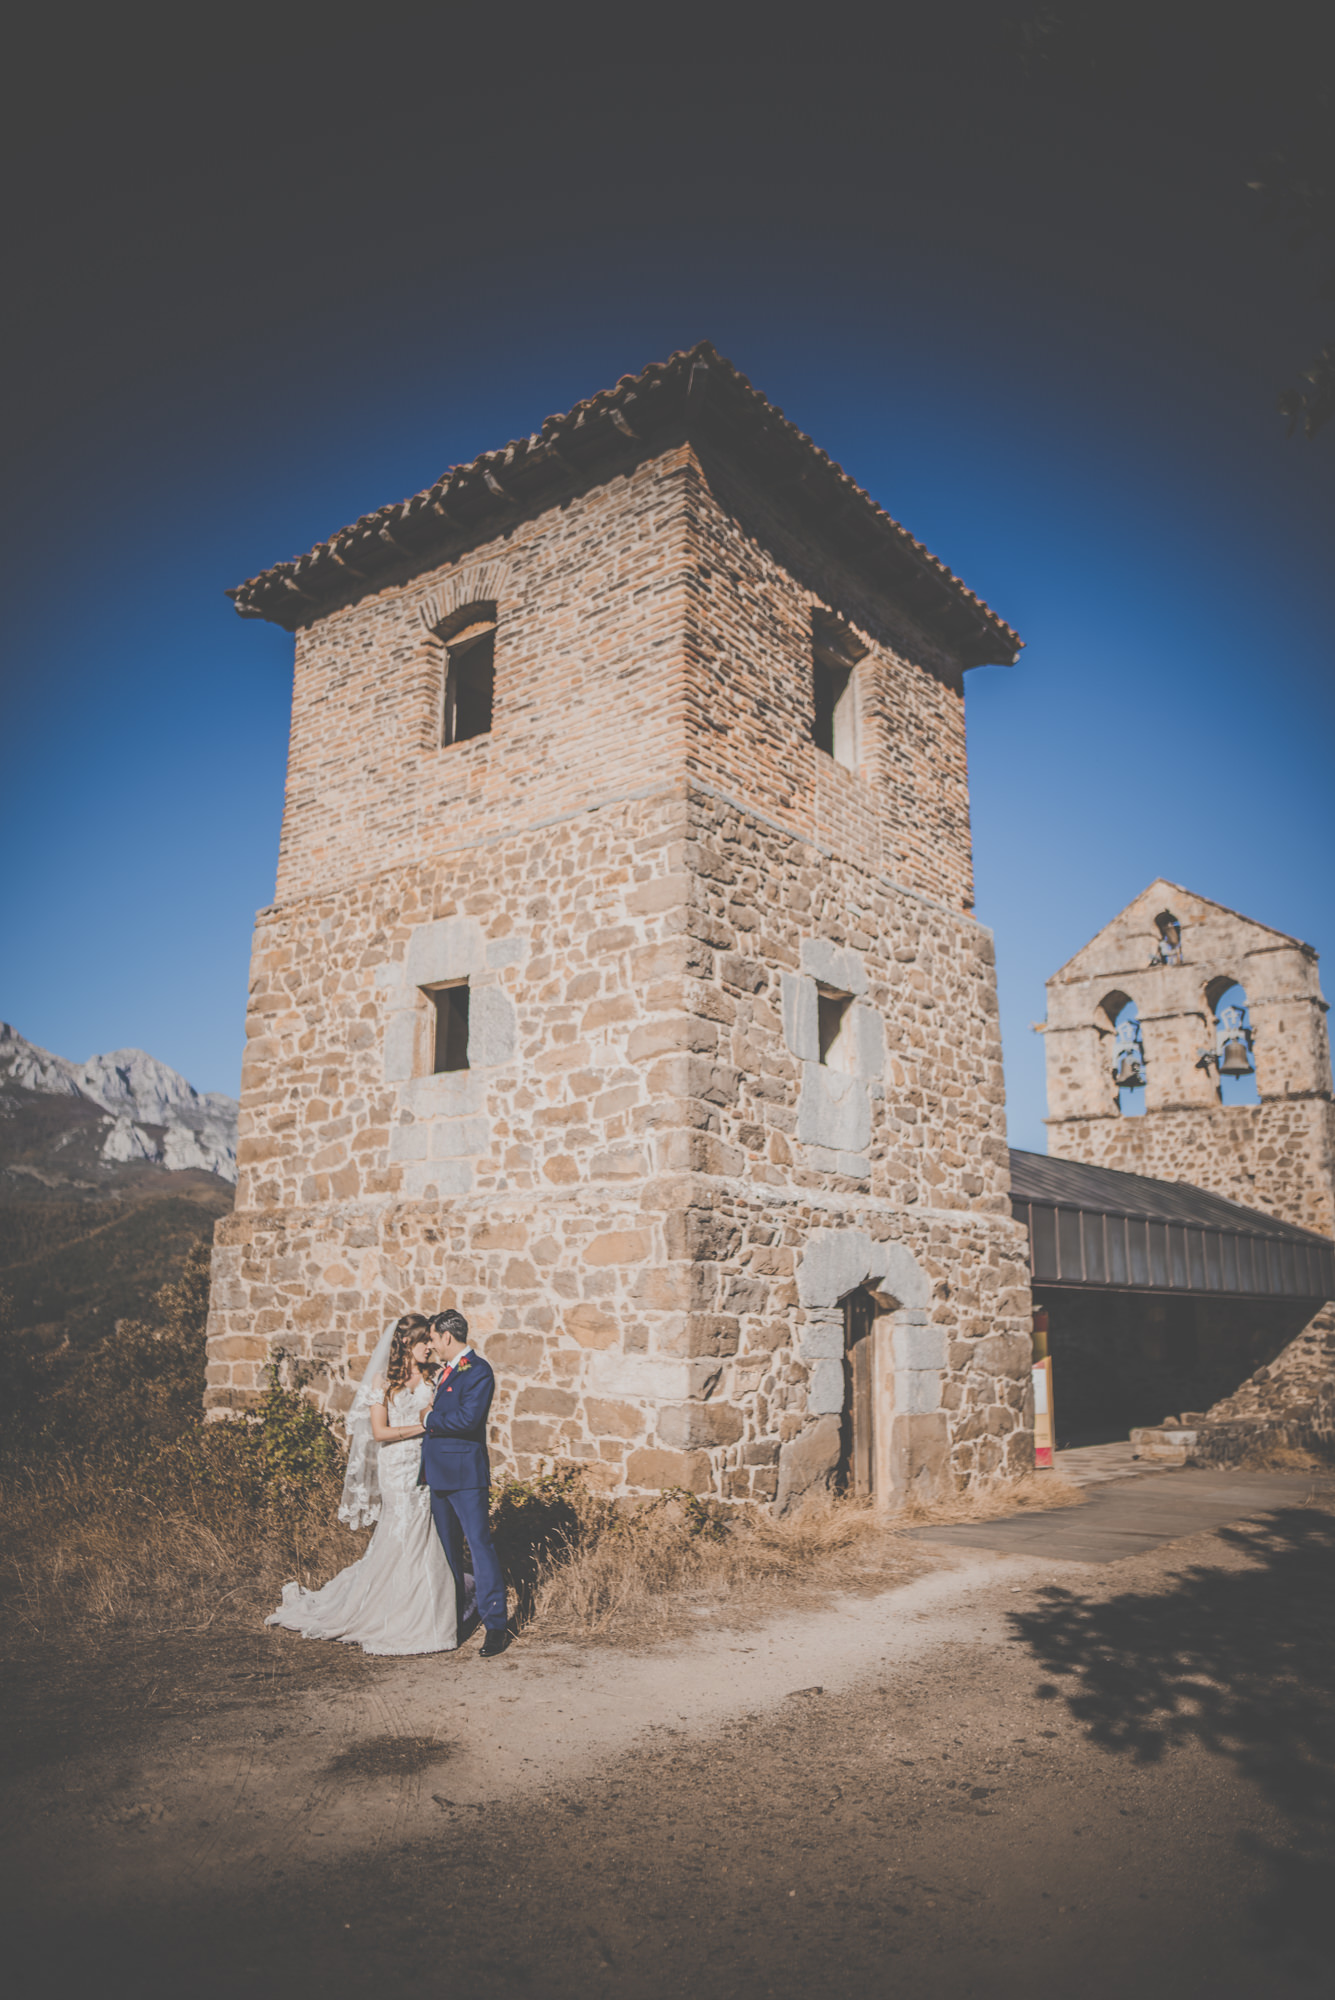 Amy-and-Andres-destination-wedding-in-Potes-Spain-Manu-Mendoza-Wedding-Photography-440.jpg